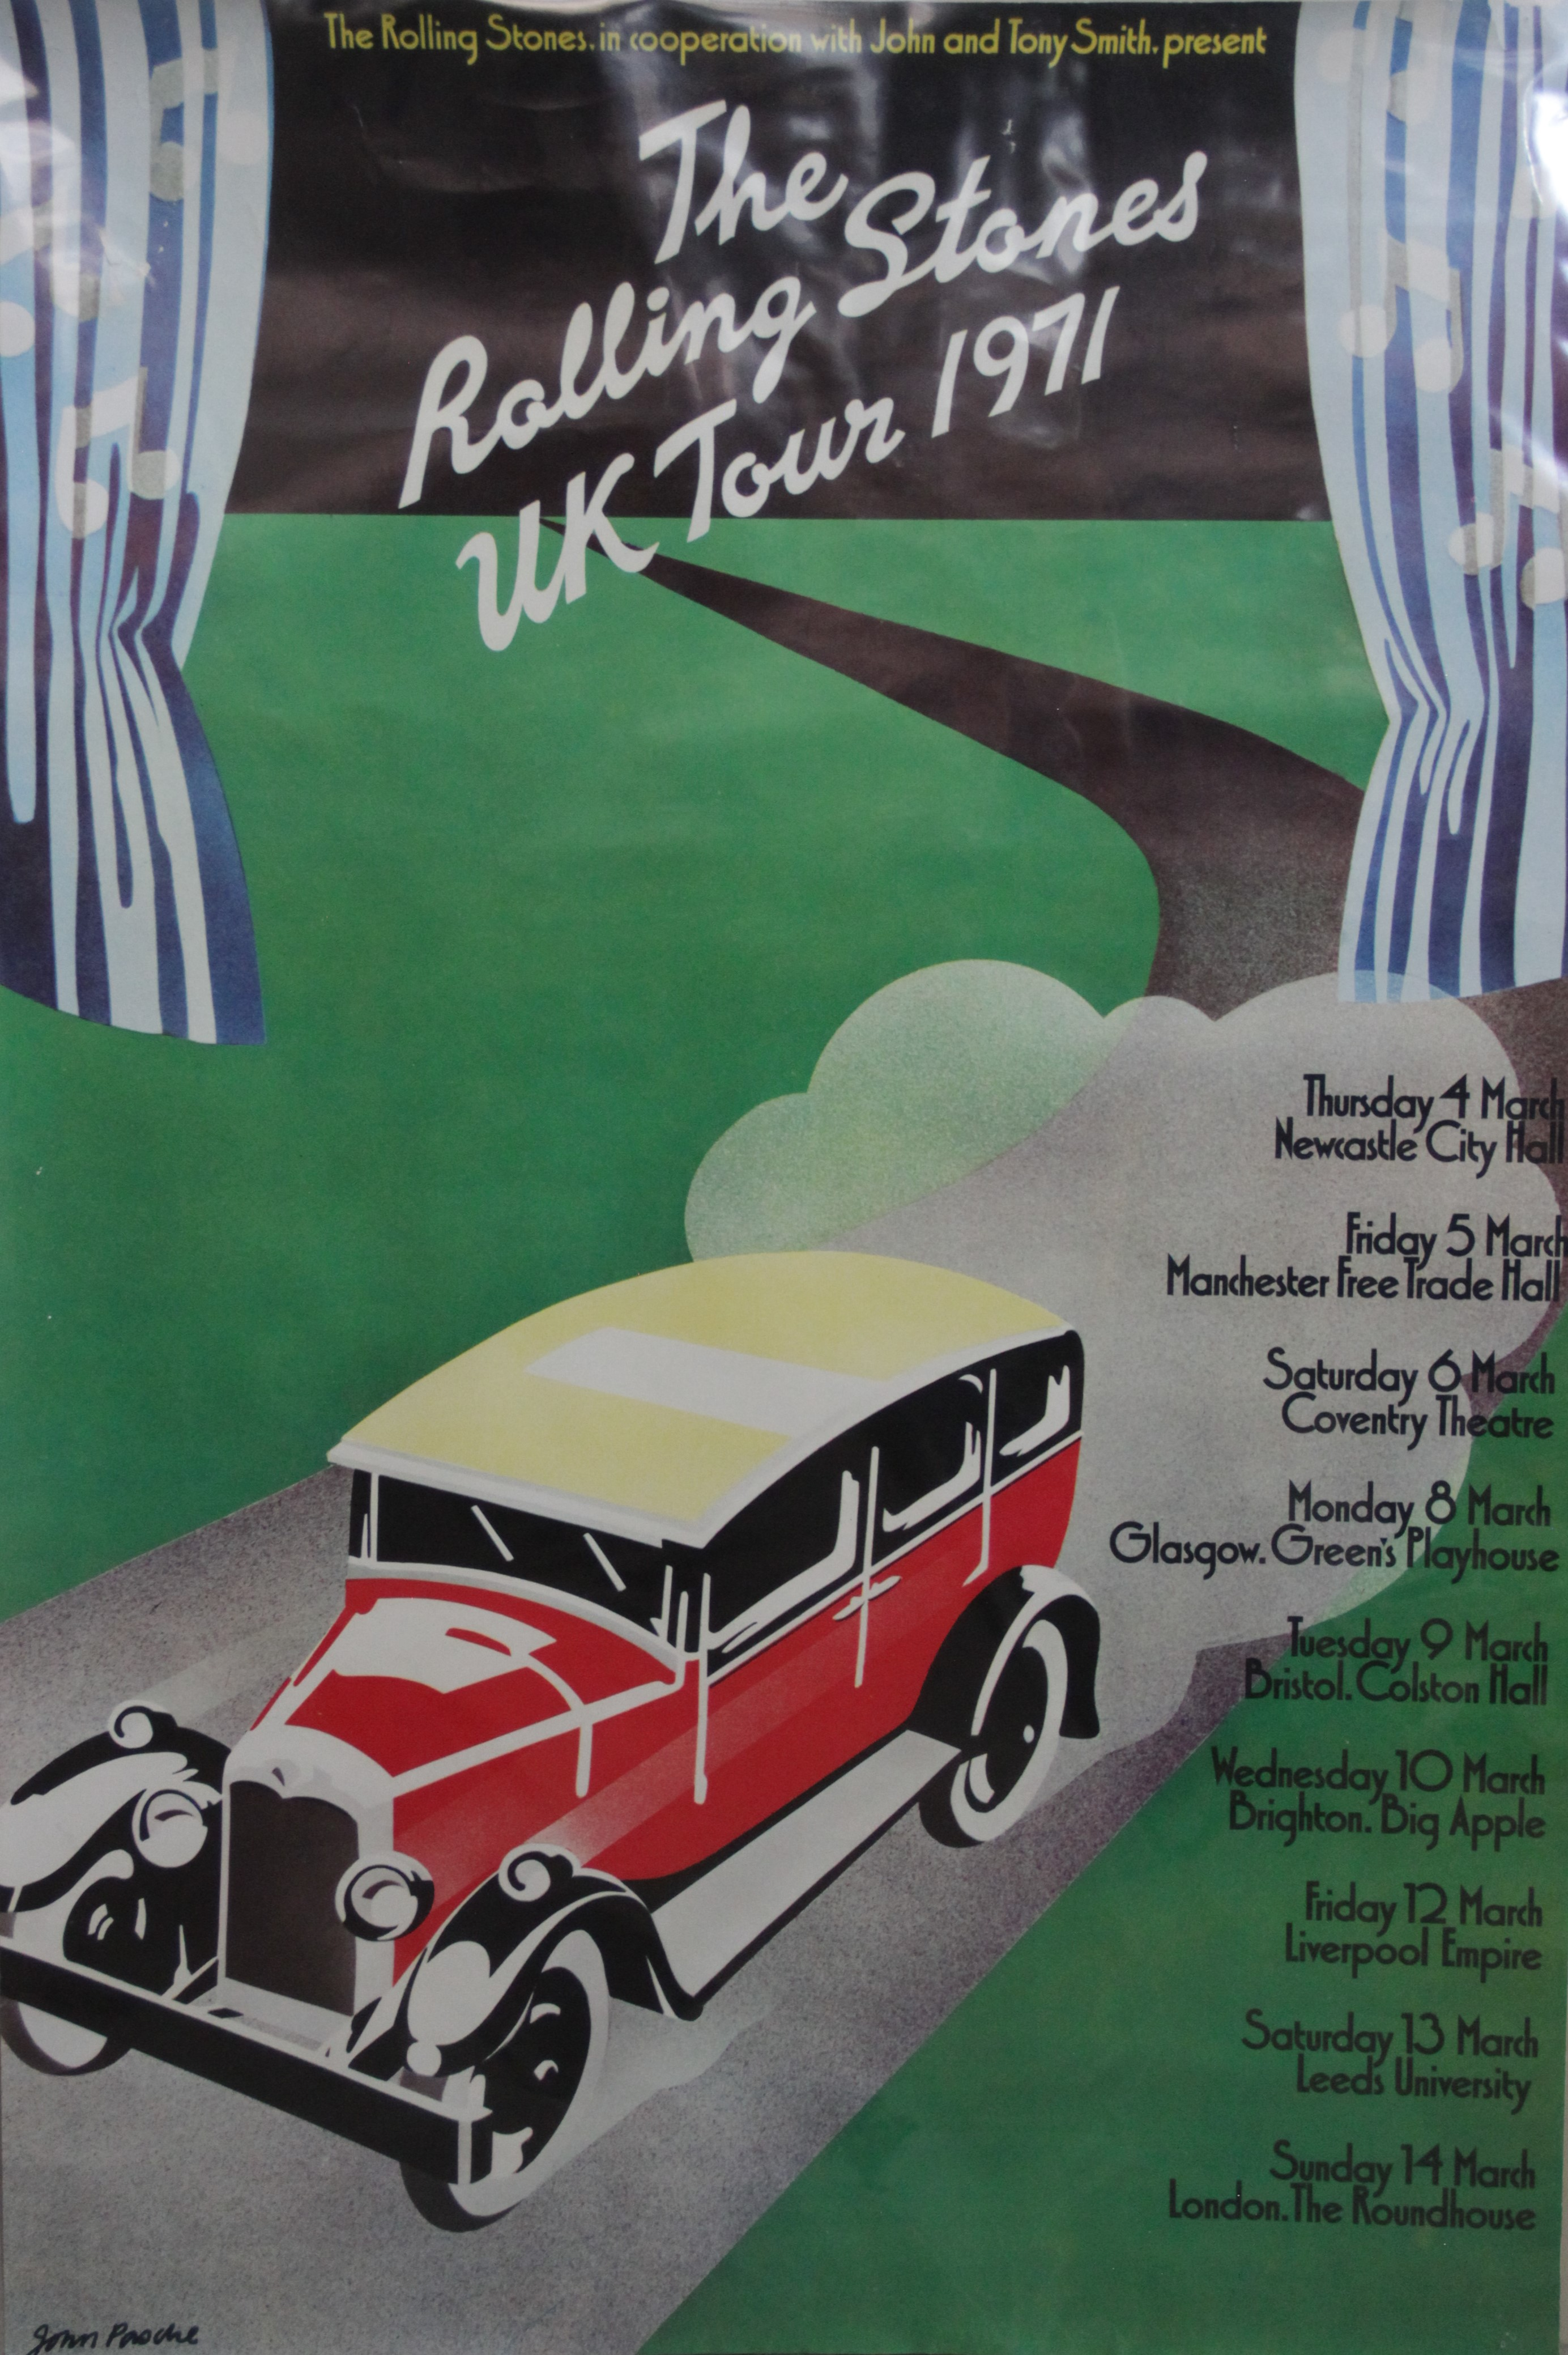 A ROLLING STONES 1971 tour poster designed by John Pasche, rolled as issued, previously secured by a